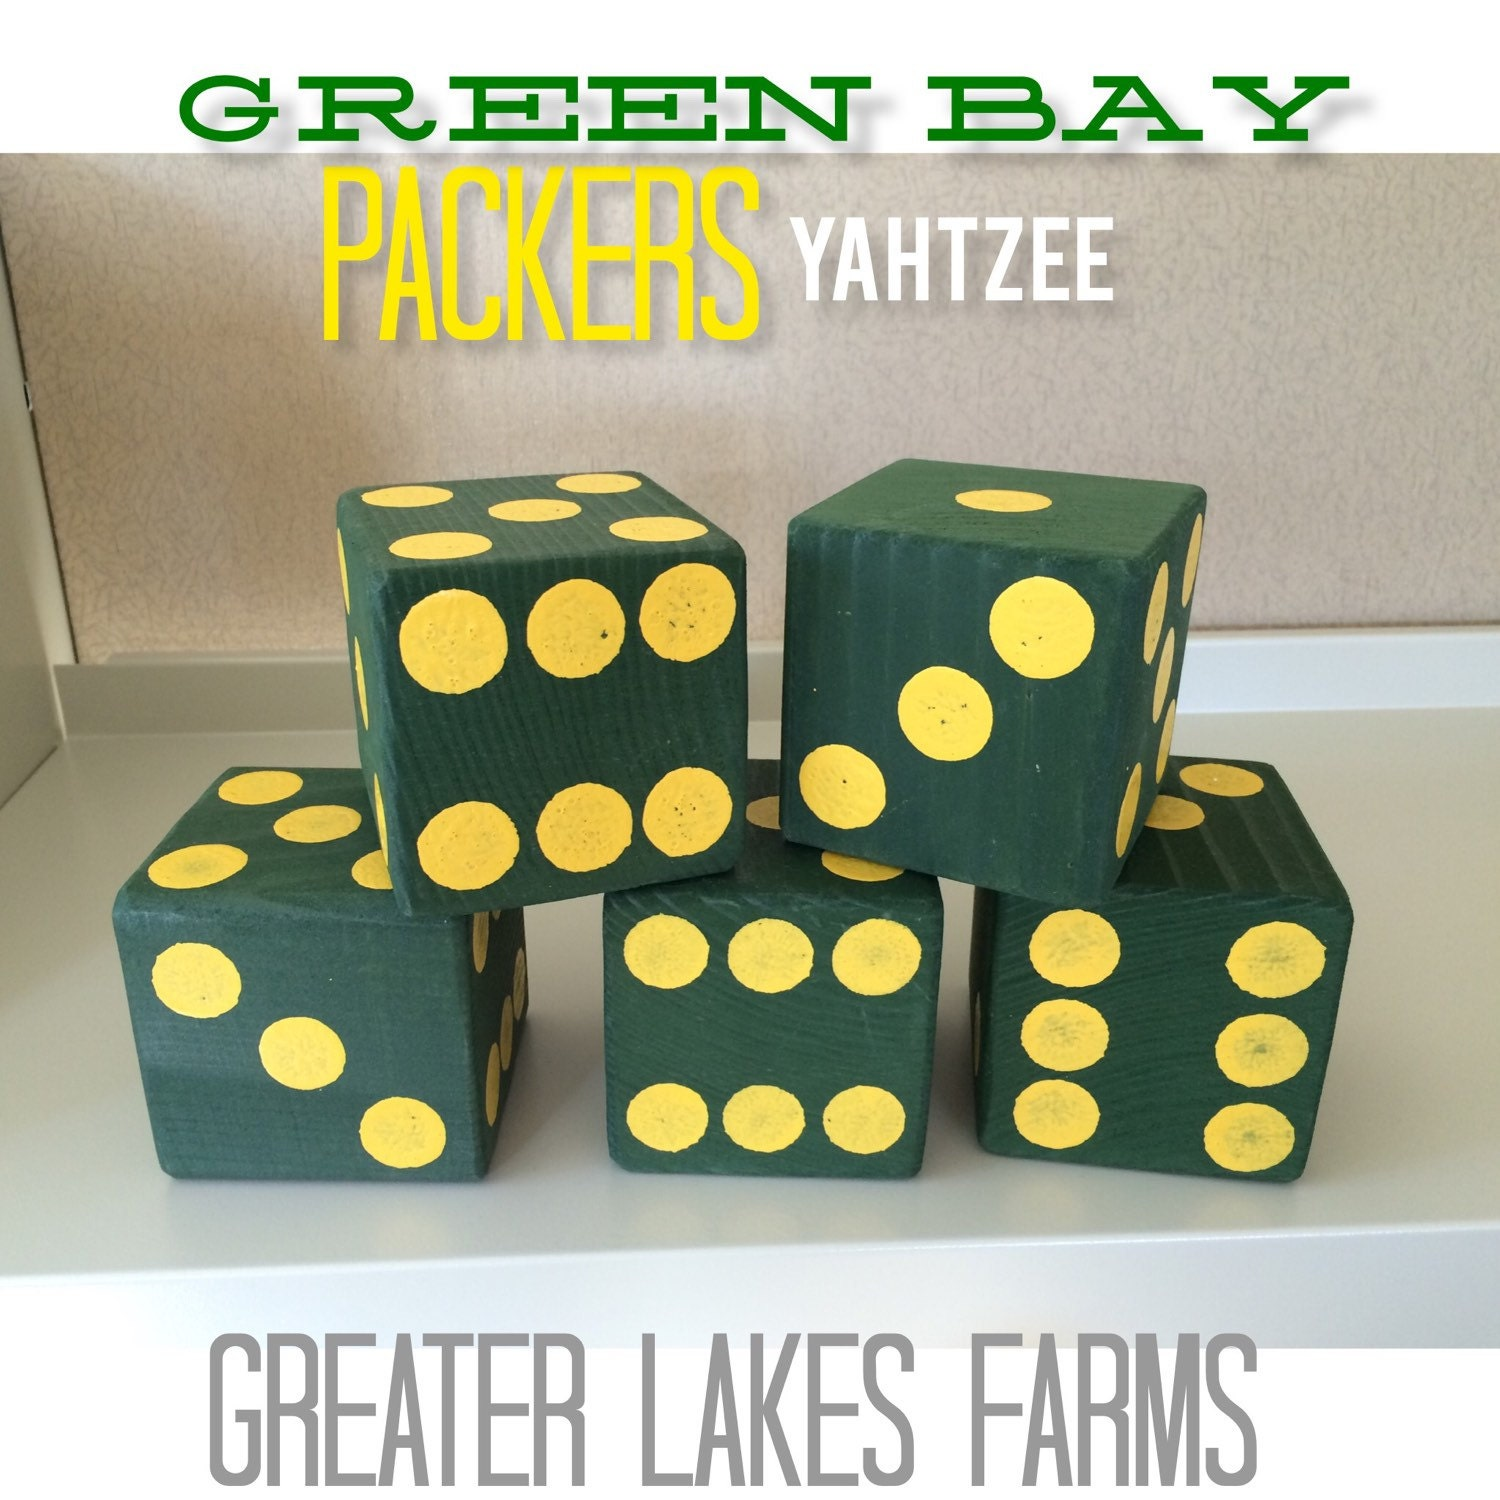 Green Bay Packers Giant Yard Yahtzee Sanded and Painted